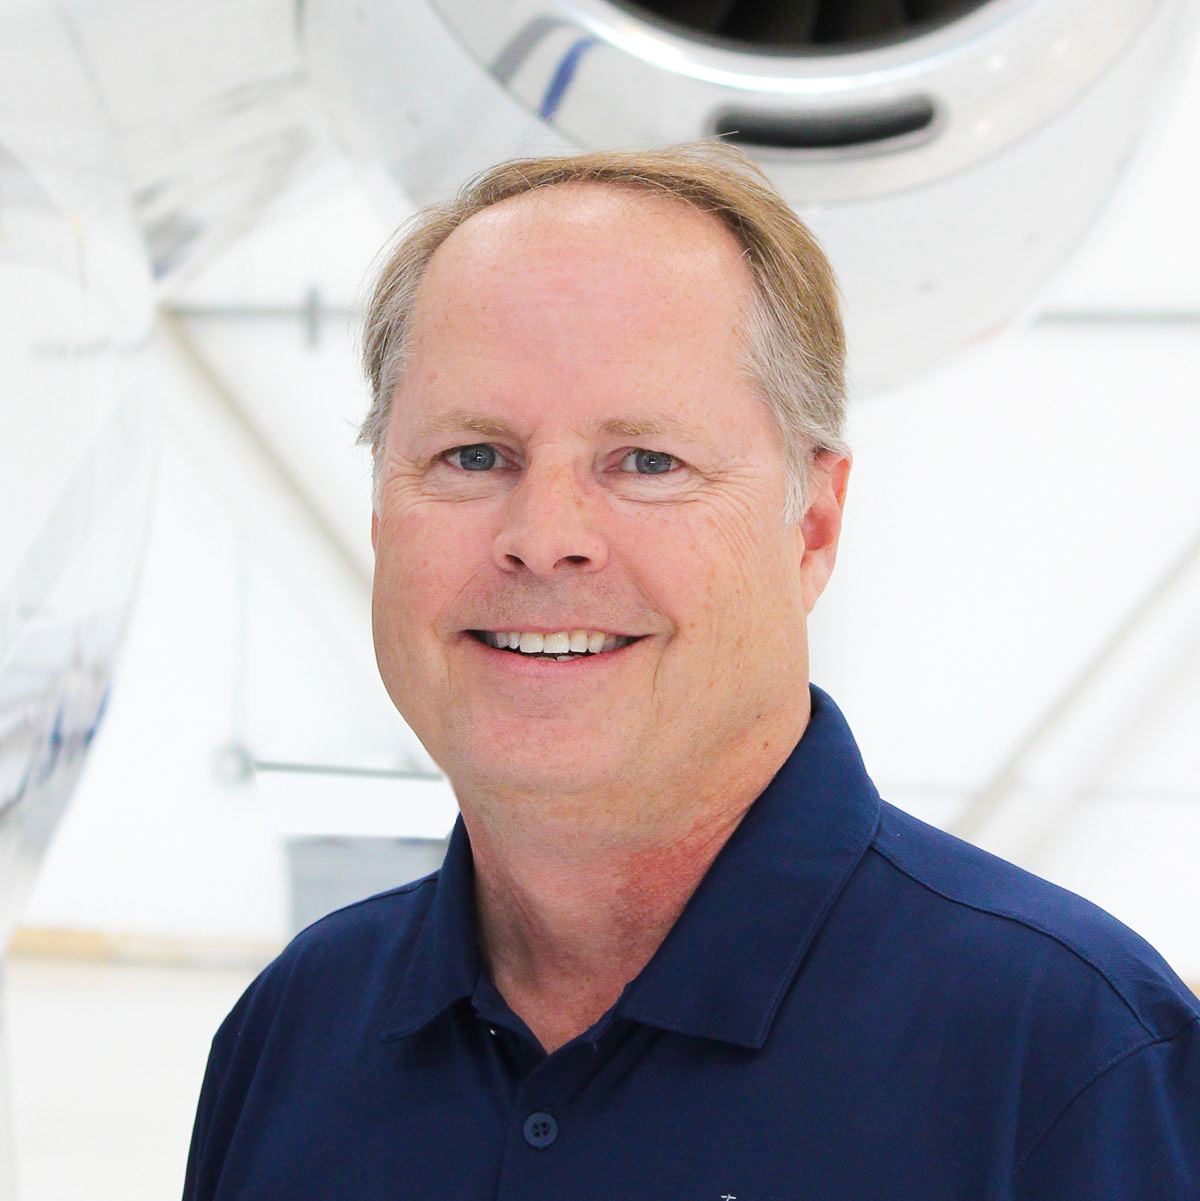 Steve La Haise Director of Safety at Latitude 33 Aviation